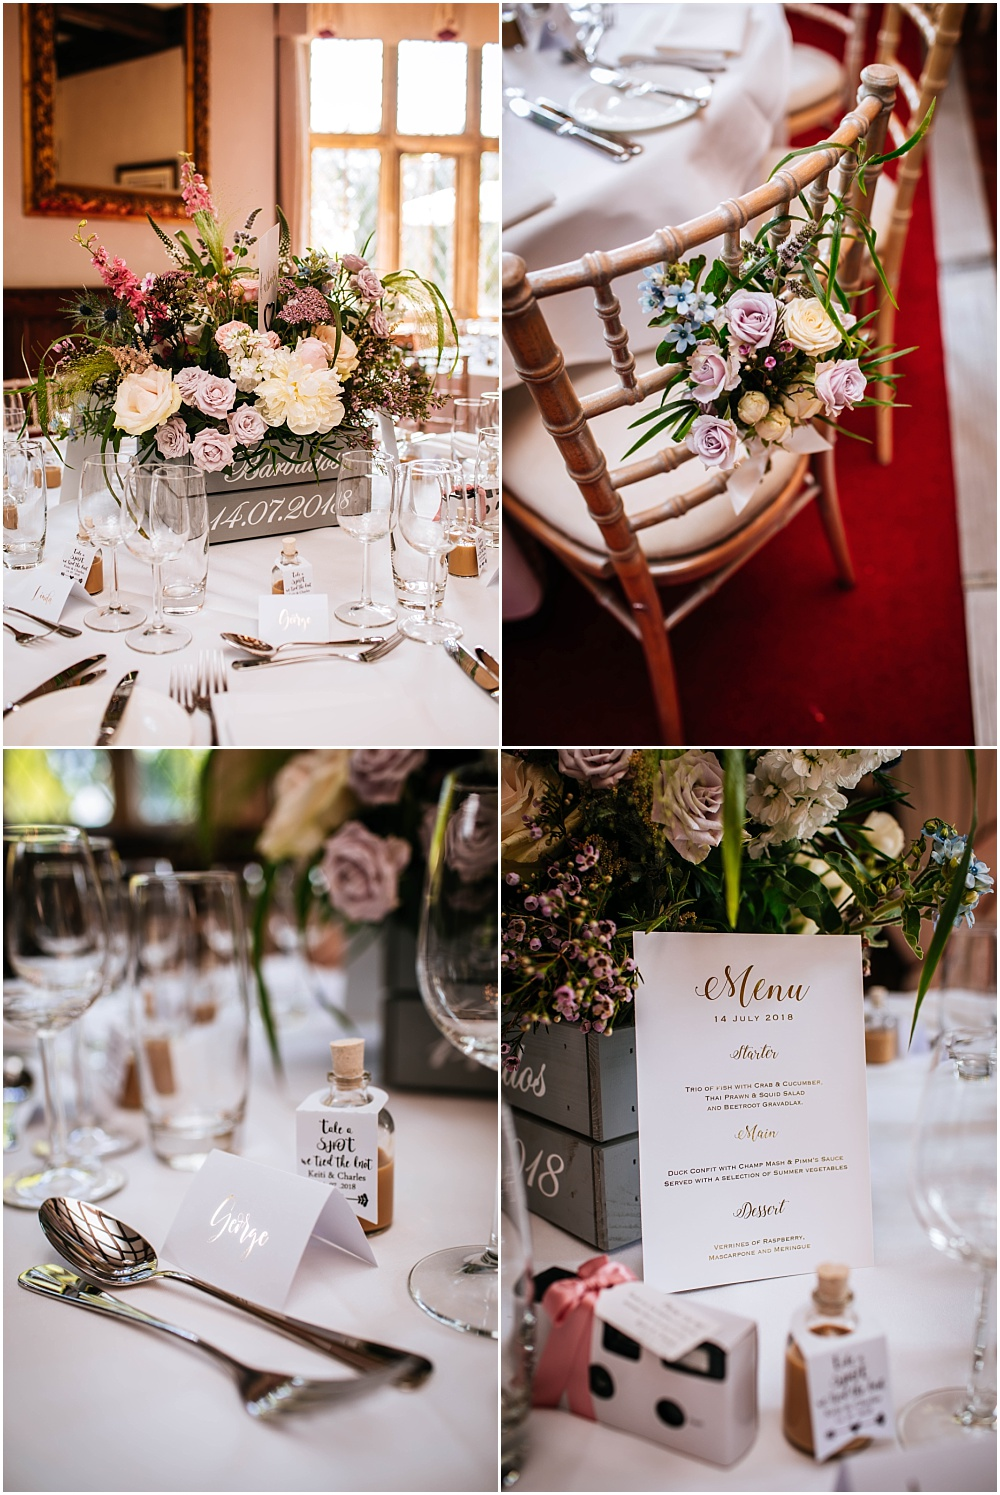 Smallfield place wedding breakfast details